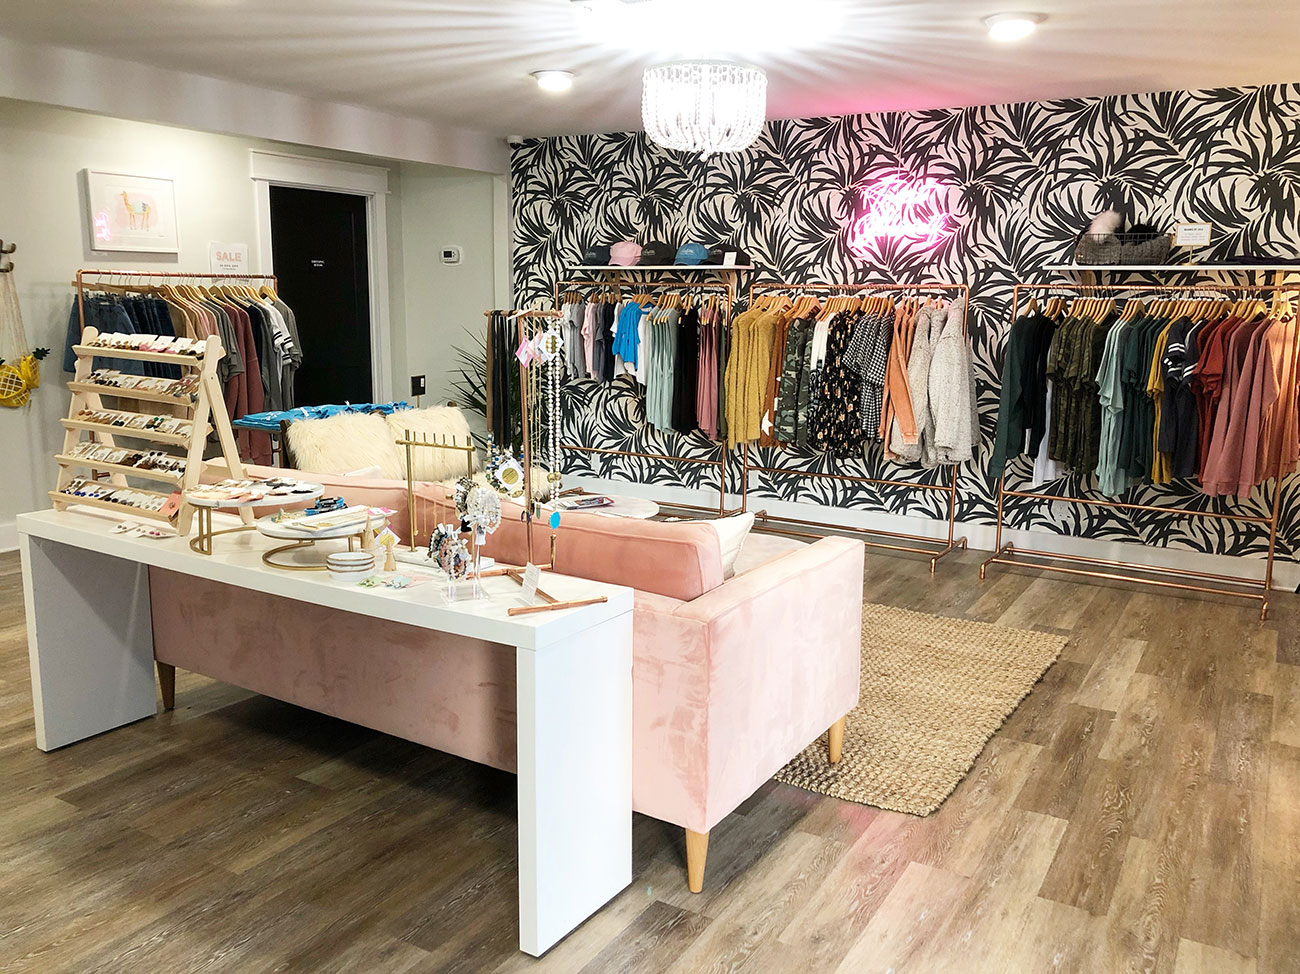 This local boutique is a top 100 Etsy vendor bringing in nearly $1 million annually